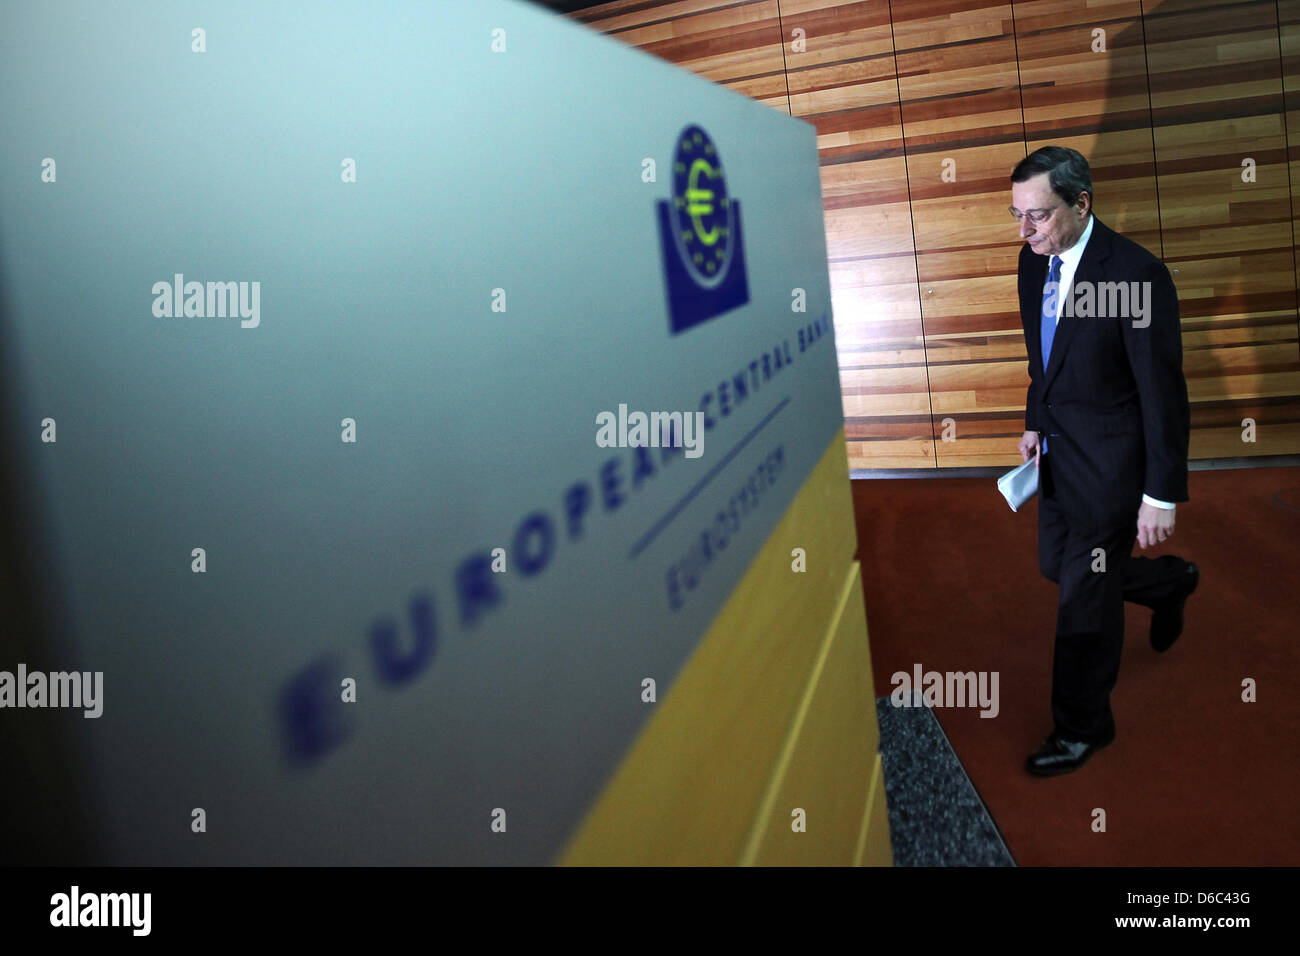 President of the European Central Bank (ECB) Mario Draghi arrives at a press conference at the ECB's headquarters - Stock Image